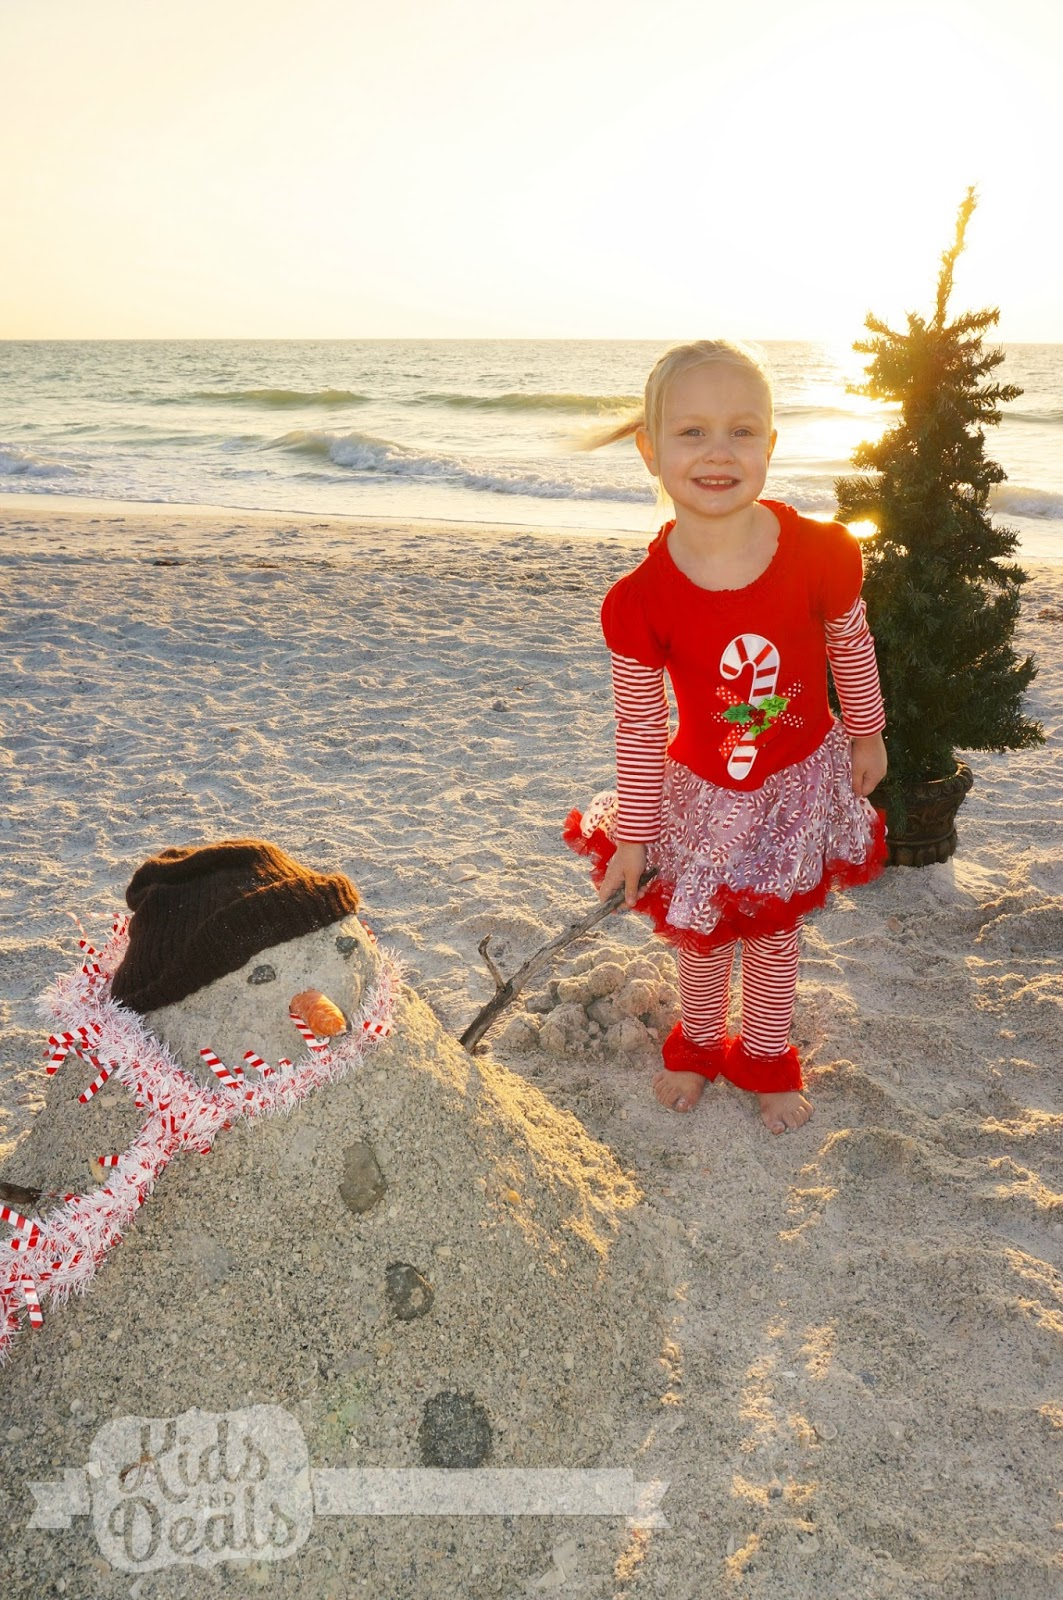 Kids and Deals: Beach Christmas Family Photo Ideas